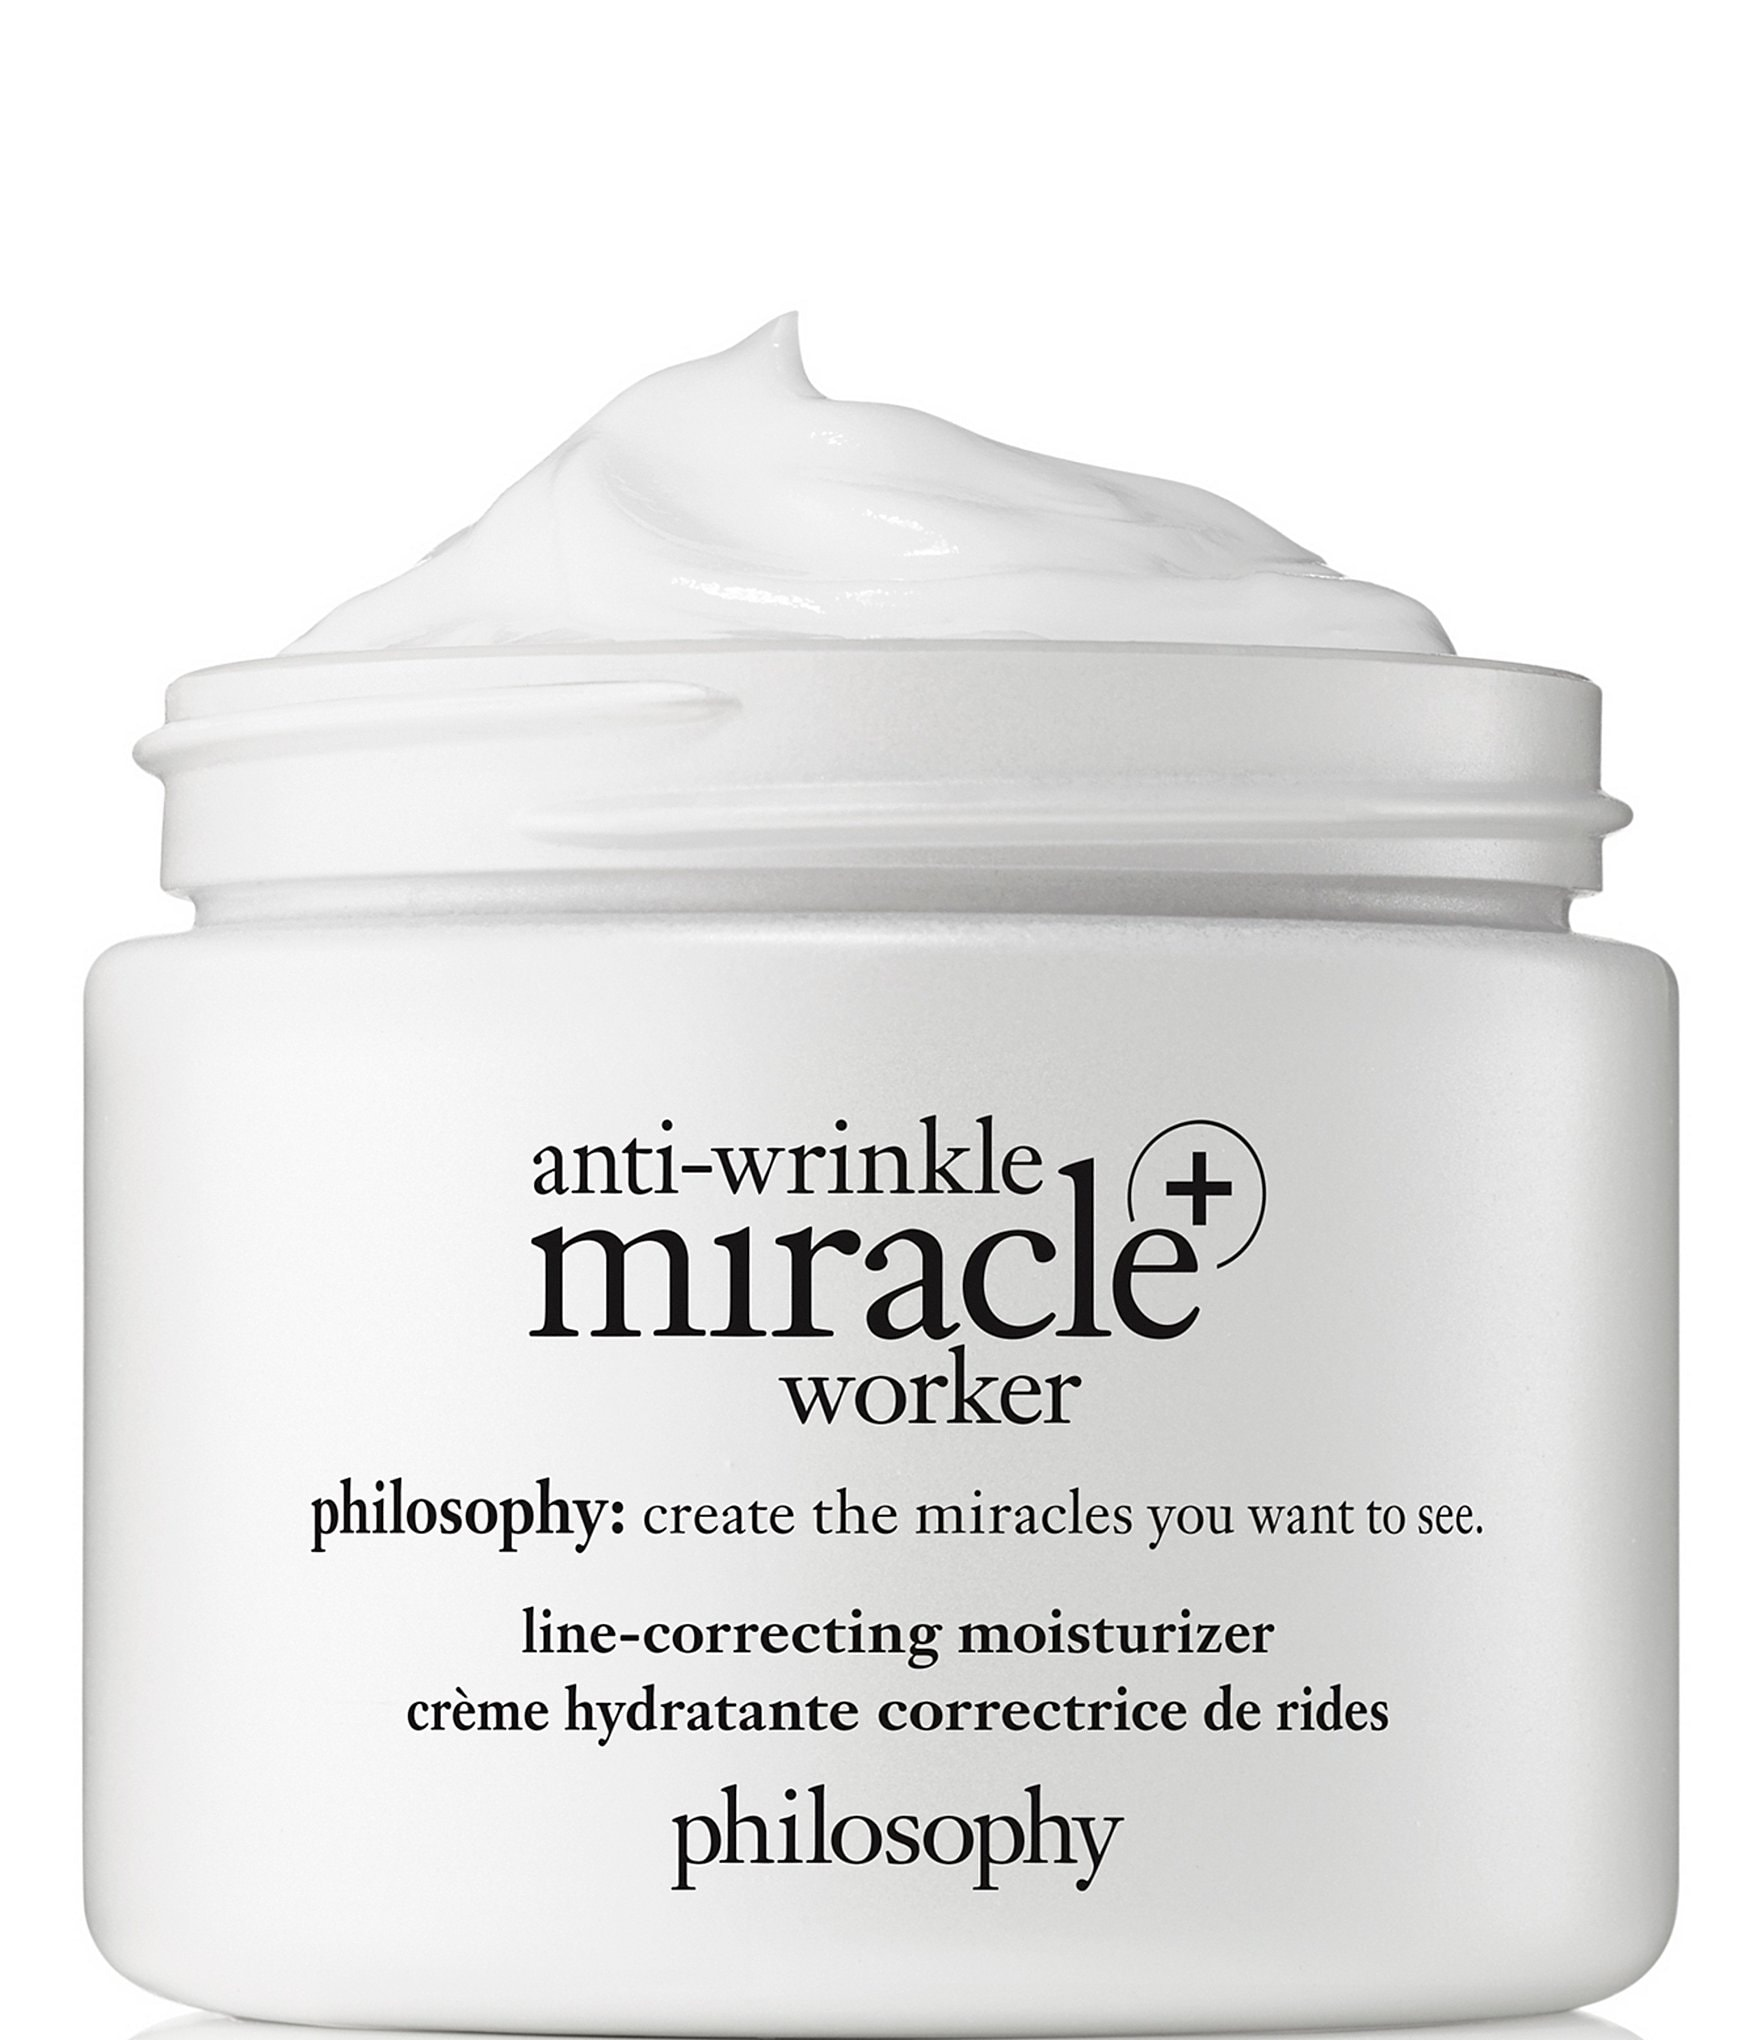 Anti-Wrinkle Miracle Worker + Line Correcting Moisturizer by philosophy #12